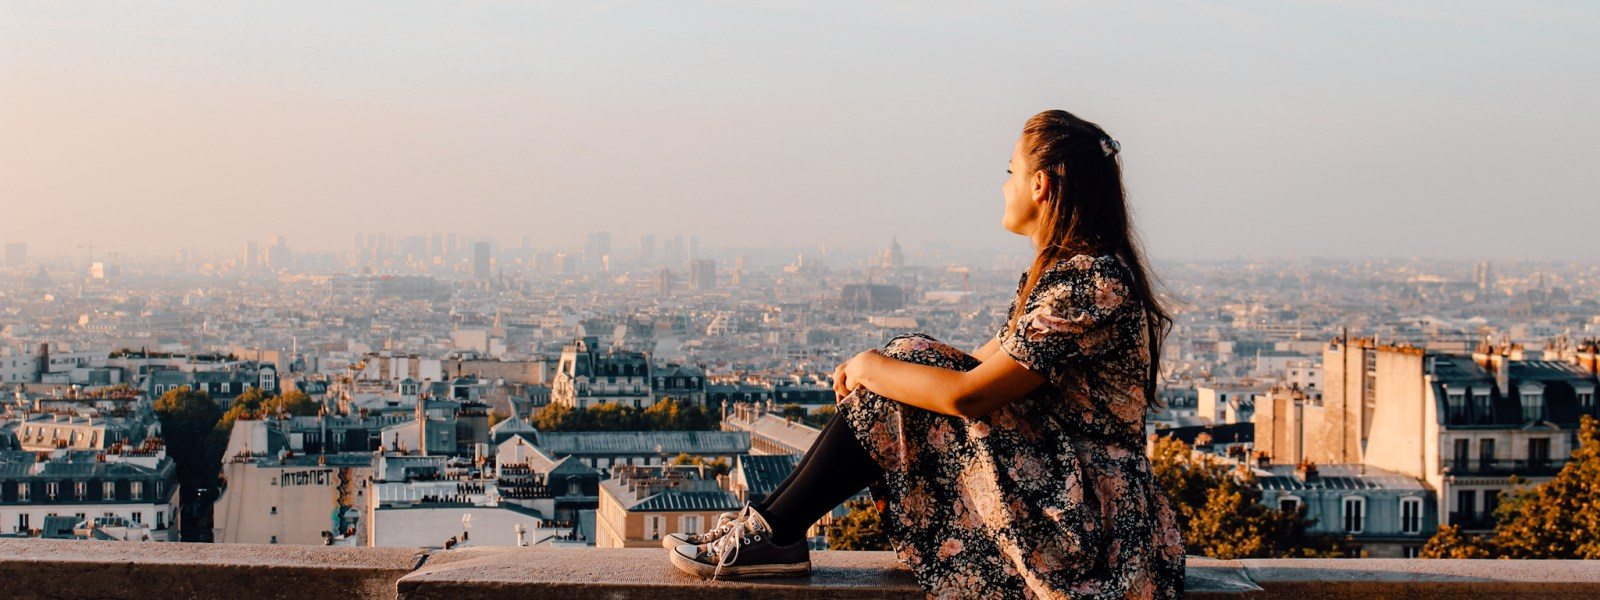 The most photogenic and instagrammable spots in Paris